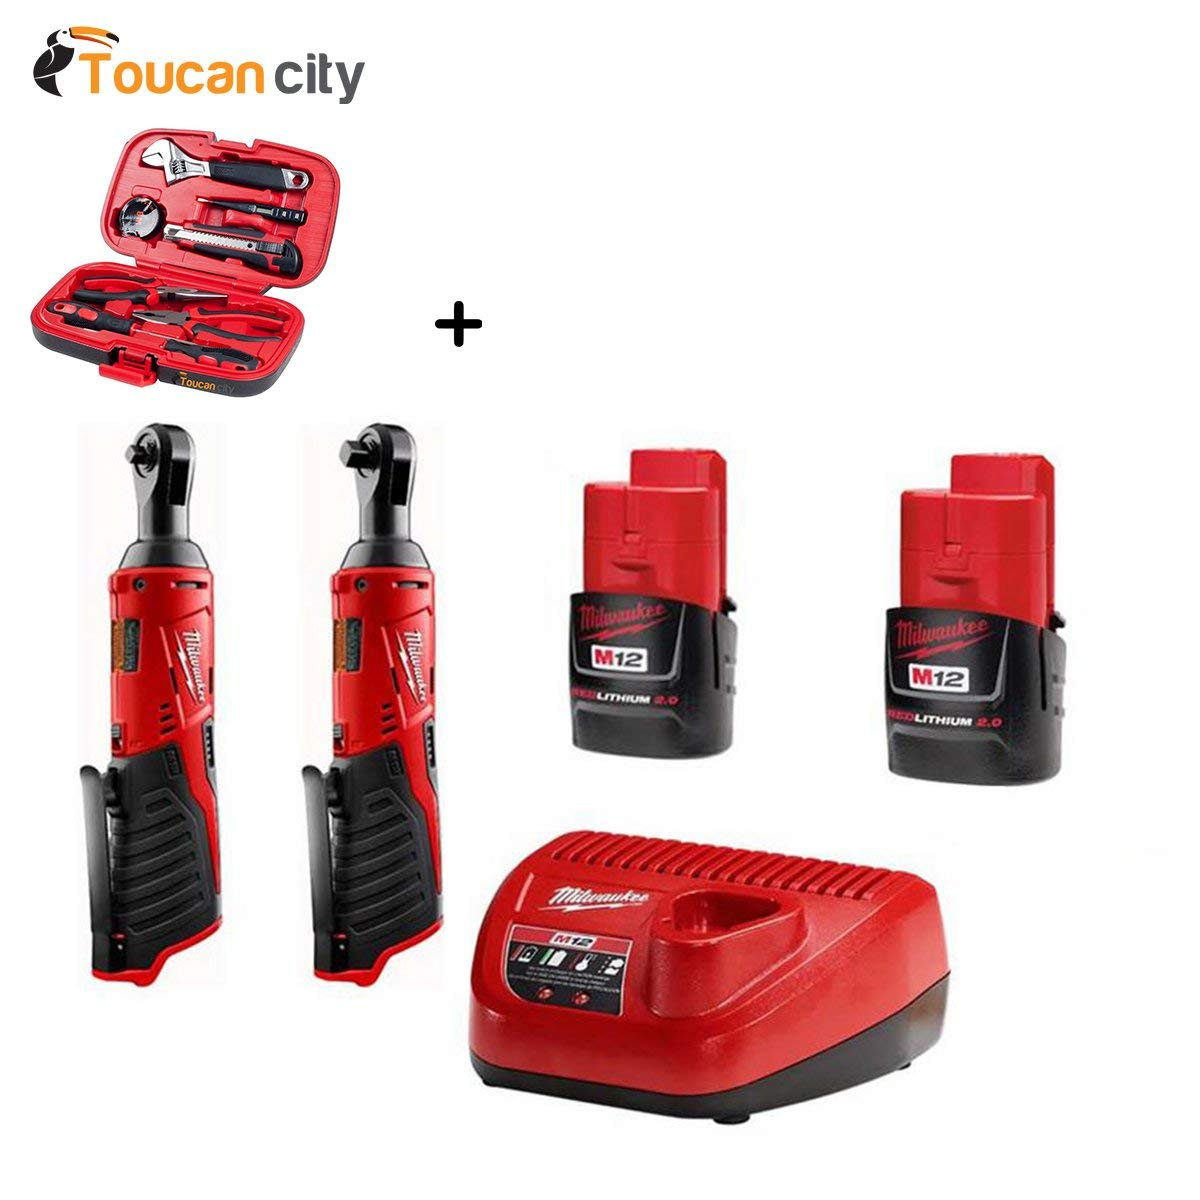 """Milwaukee M12 12-Volt Lithium-Ion Cordless 1/4"""" Ratchet and 3/8"""" Ratchet Combo Kit (2-Tool) W/ (2) 2.0Ah Batteries 2456-20-2457-20-48-59-2420-48-11-2420 and Toucan City Tool Kit (9-Piece)"""